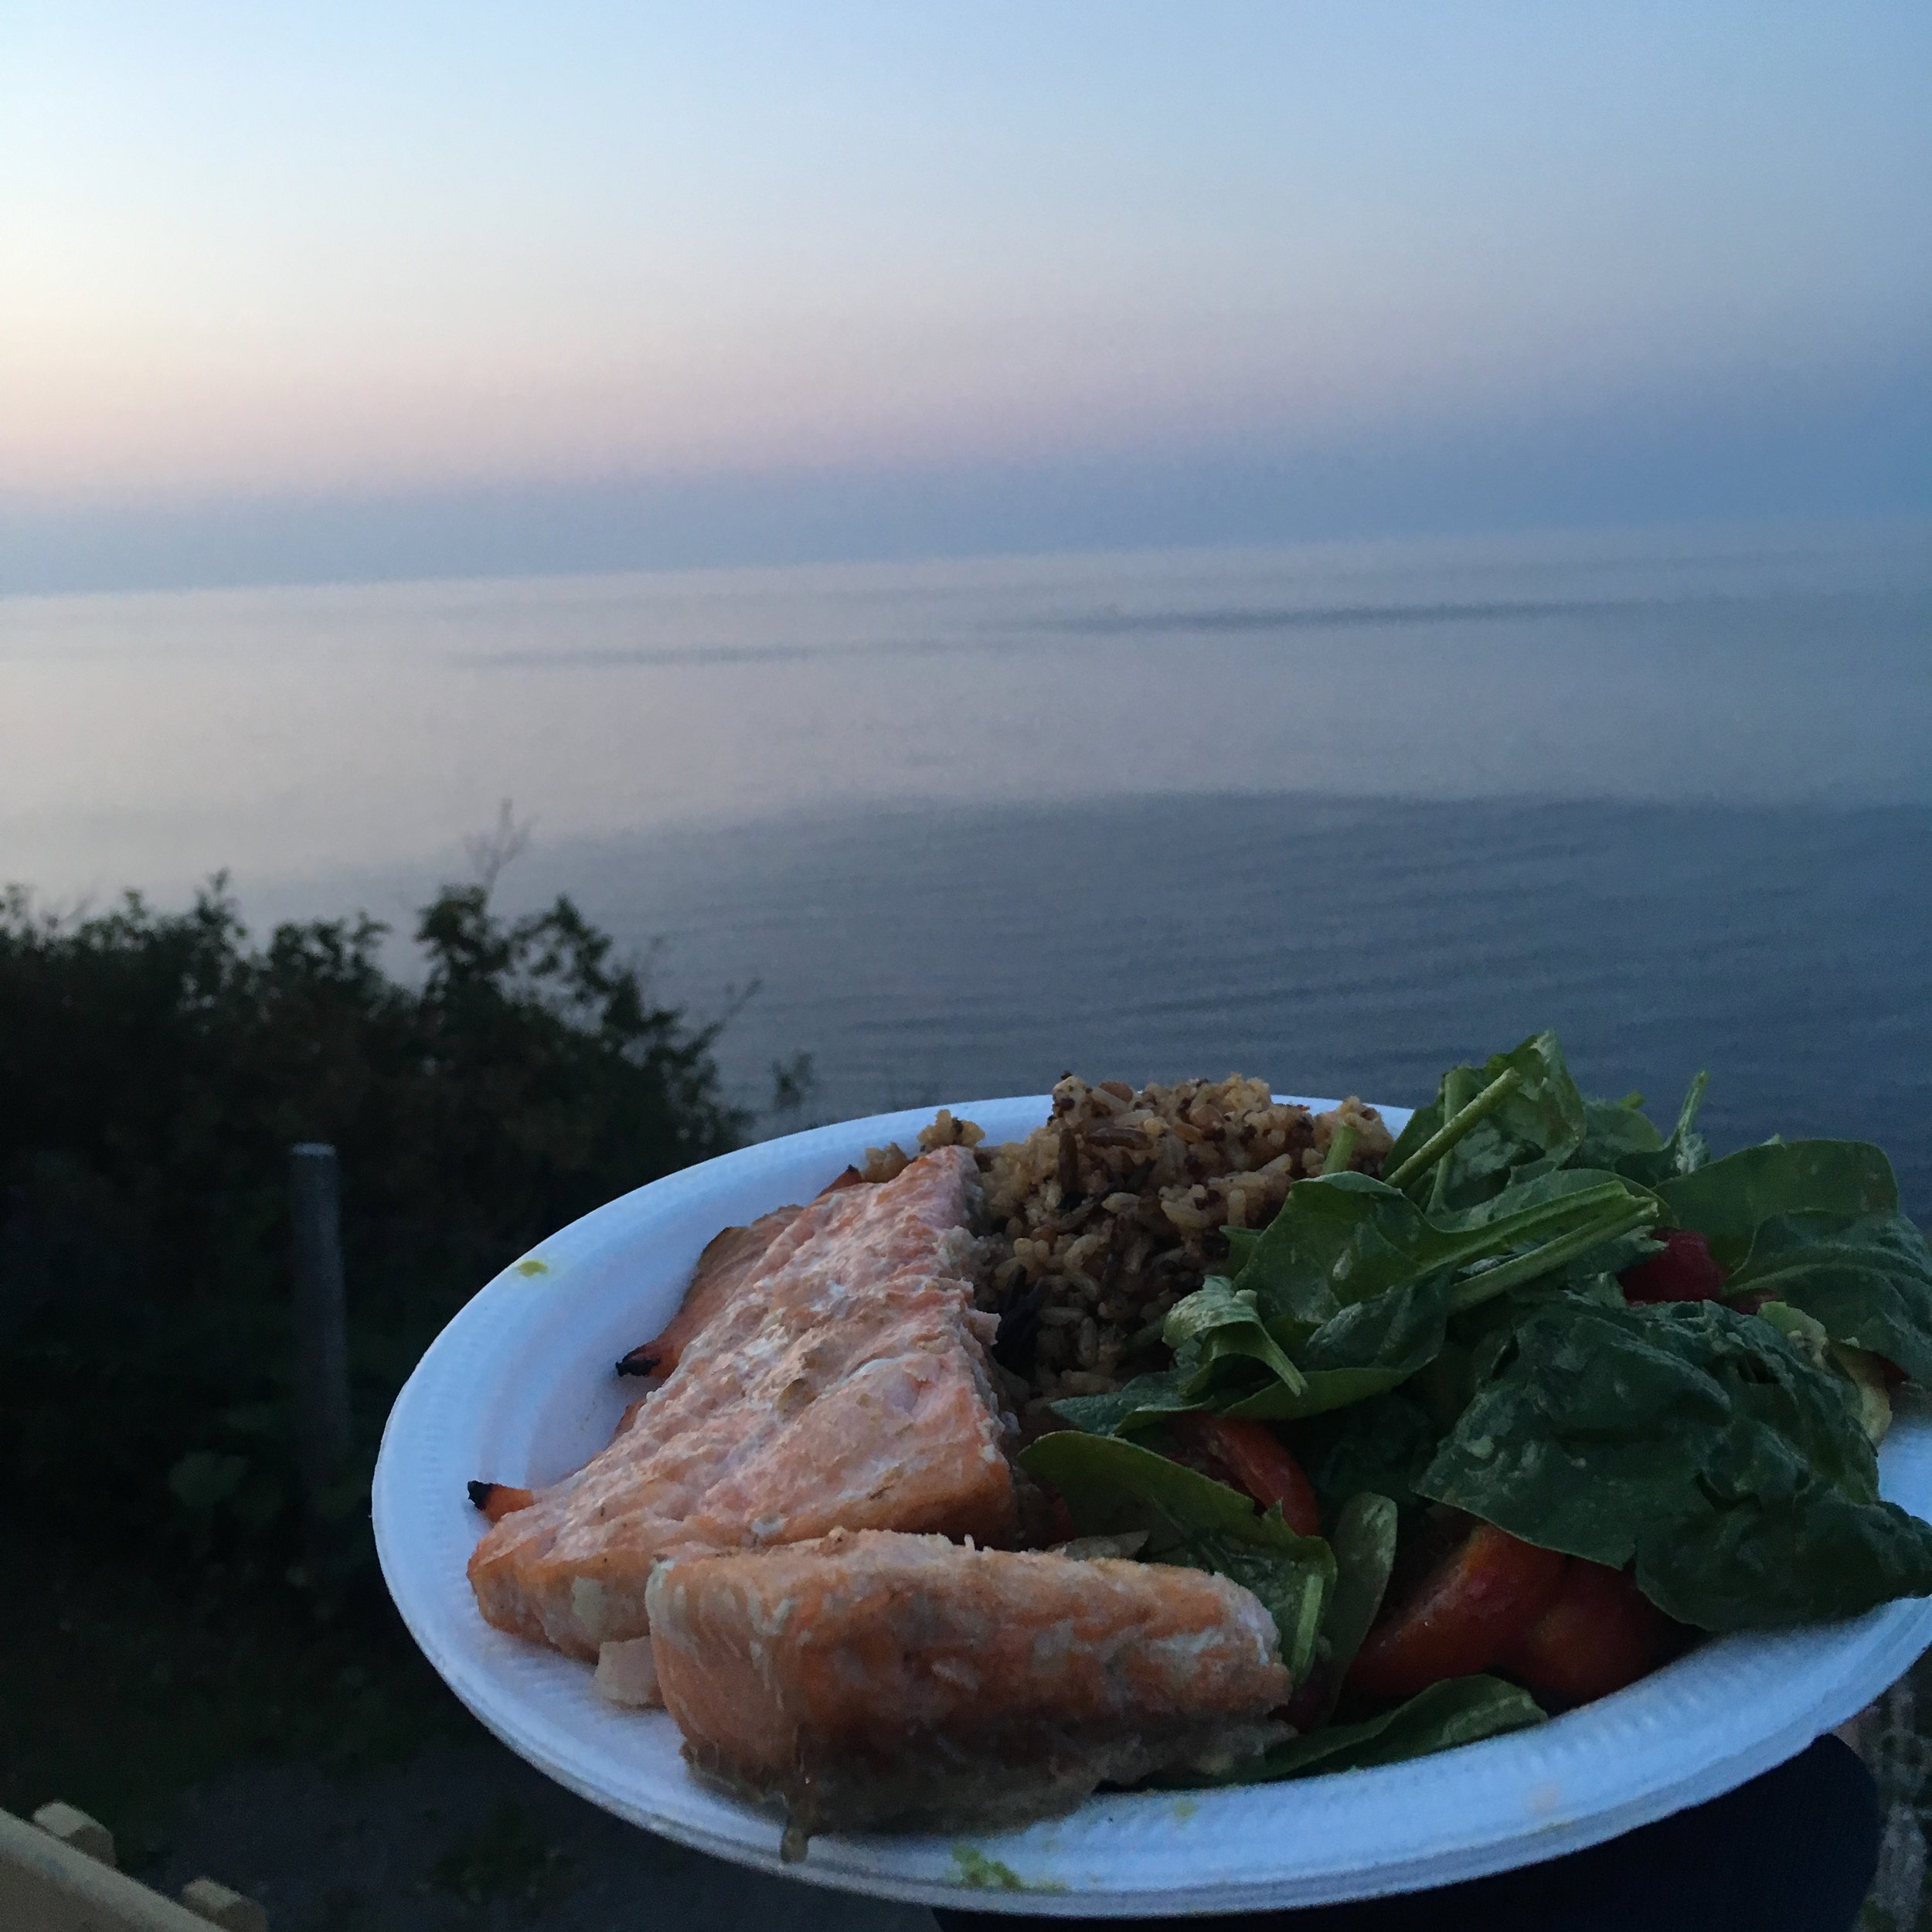 Grilled Maple Glazed Salmon Filets With A View